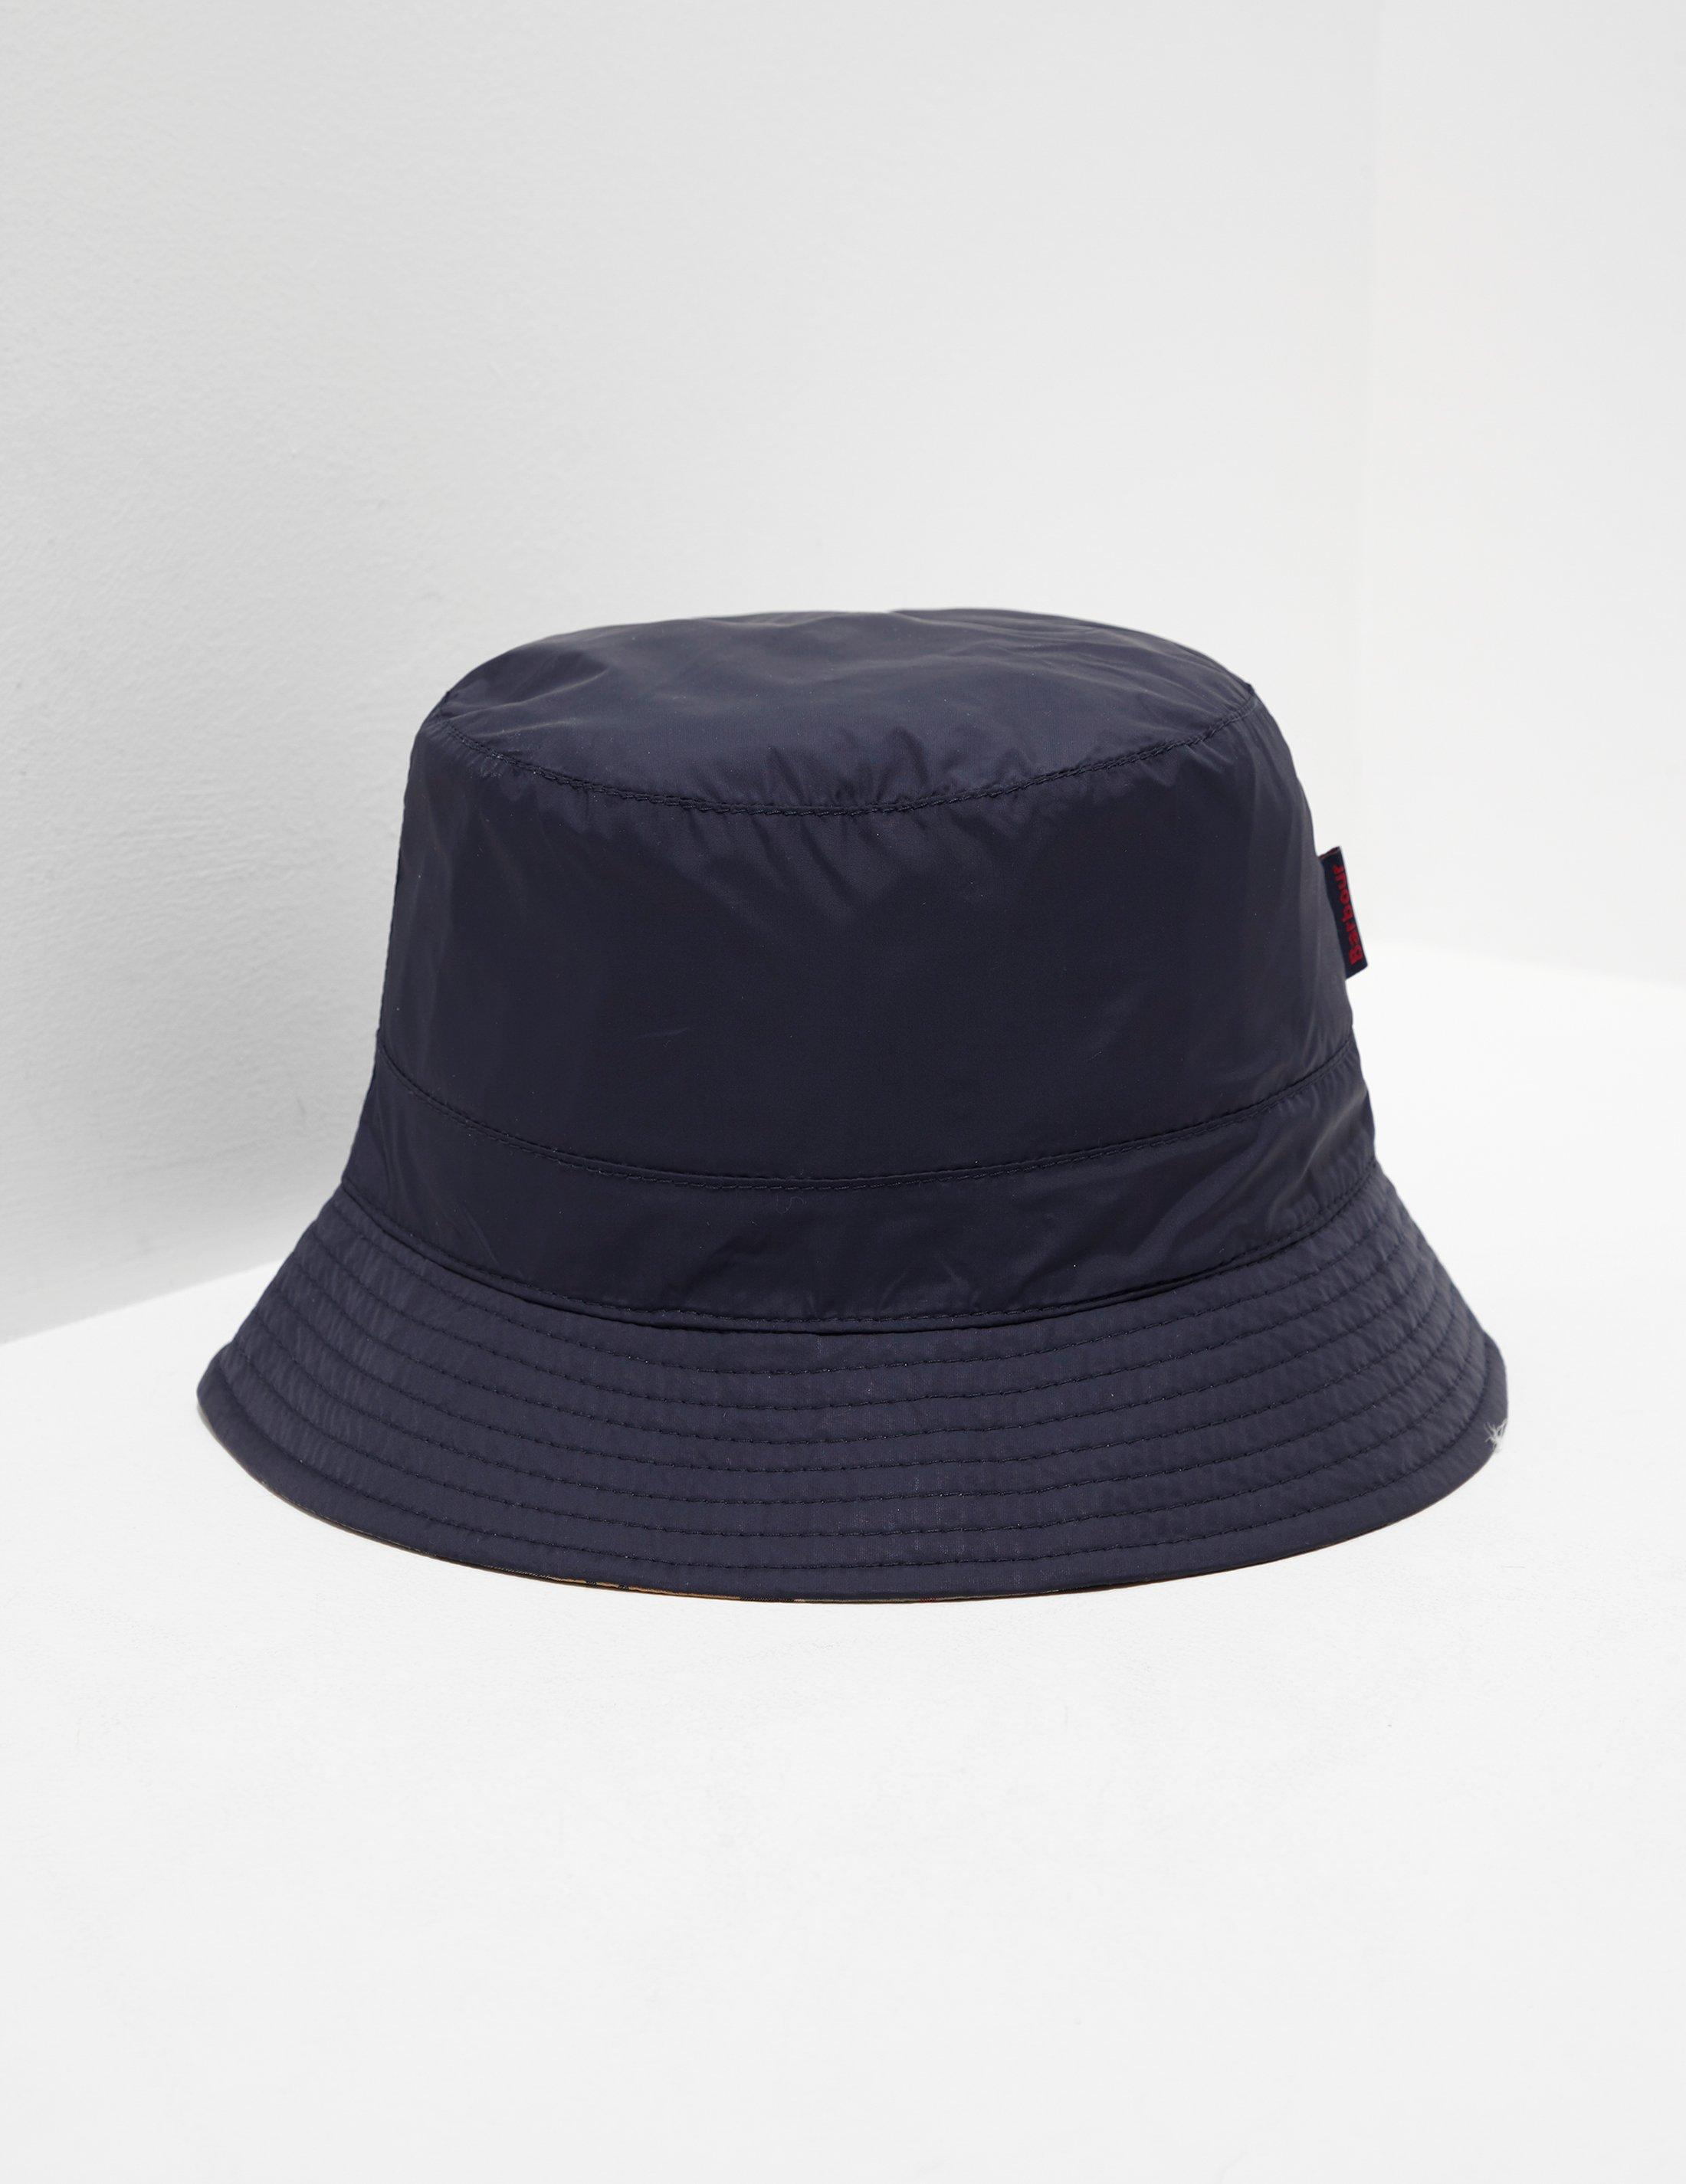 Lyst - Barbour Mens Reverse Tartan Bucket Hat Navy Blue in Blue for Men 1a0329d2098